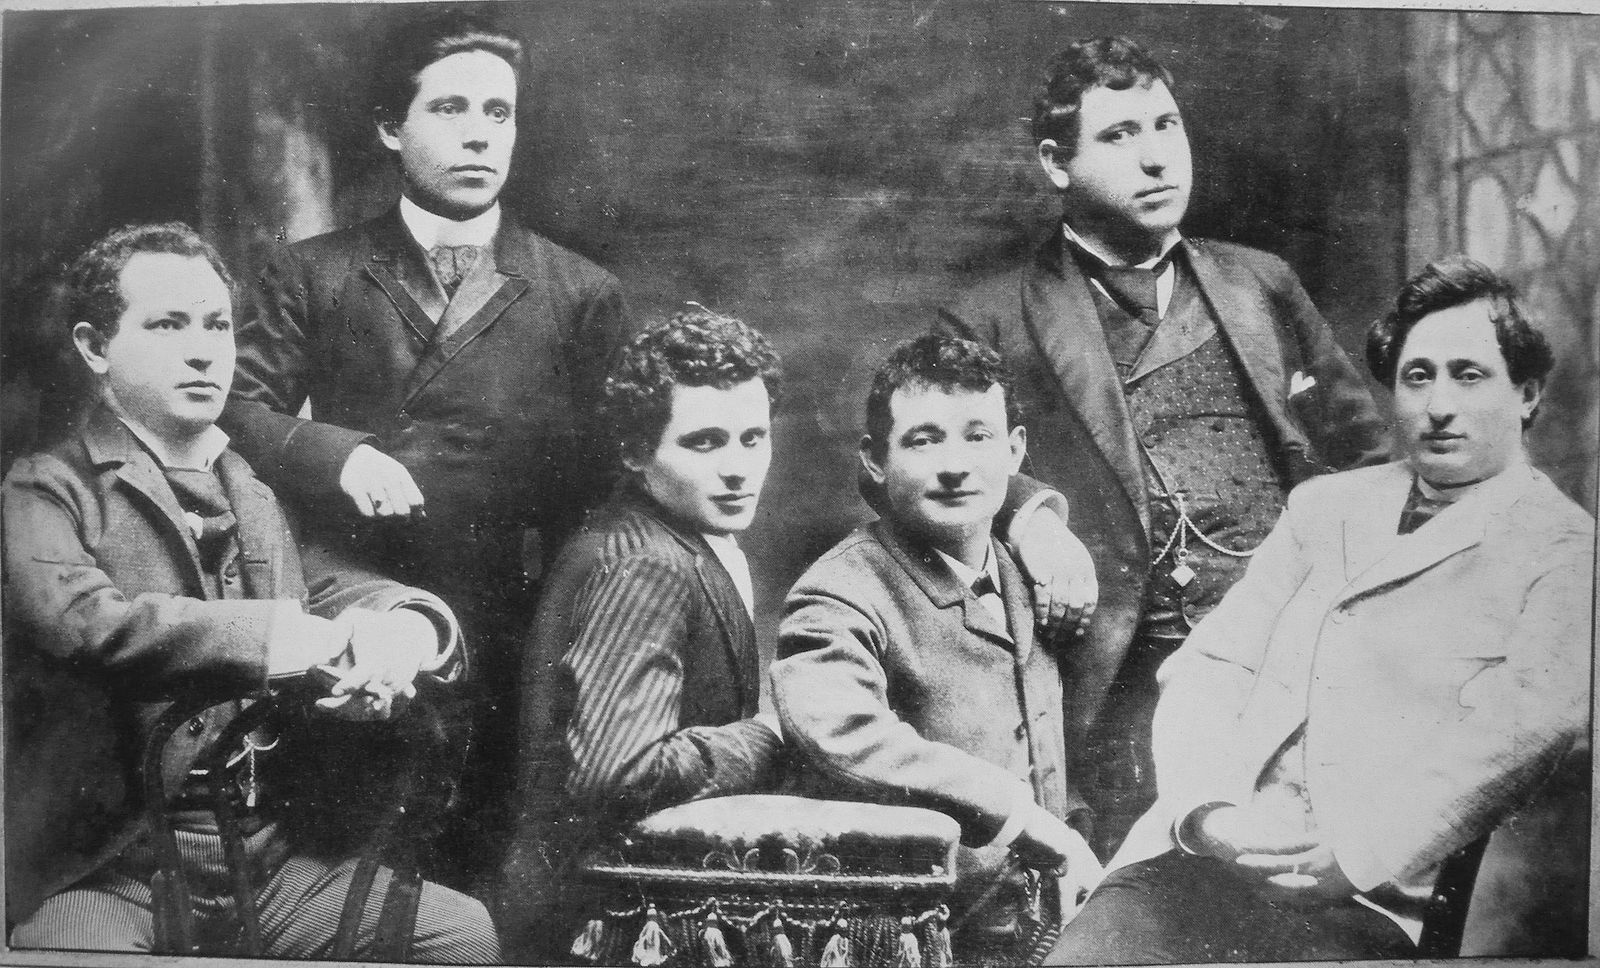 <b>Jacob Adler</b>     	</br>Yiddish theater actors and personalities: from left to right: Jacob P. Adler, Zigmund Feinman, Zigmund Mogulesko, Rudolf Marx, Mr. Krastoshinsky and David Kessler</br><br/><b>Source: </b><i>Public Domain. https://commons.wikimedia.org/wiki/File:David-Kessler_Krastoshinsky_Rudolf-Marx_Zigmund-Mogulesko_Zigmund-Feinman_Jacob-P-Adler-1888.jpg</i>